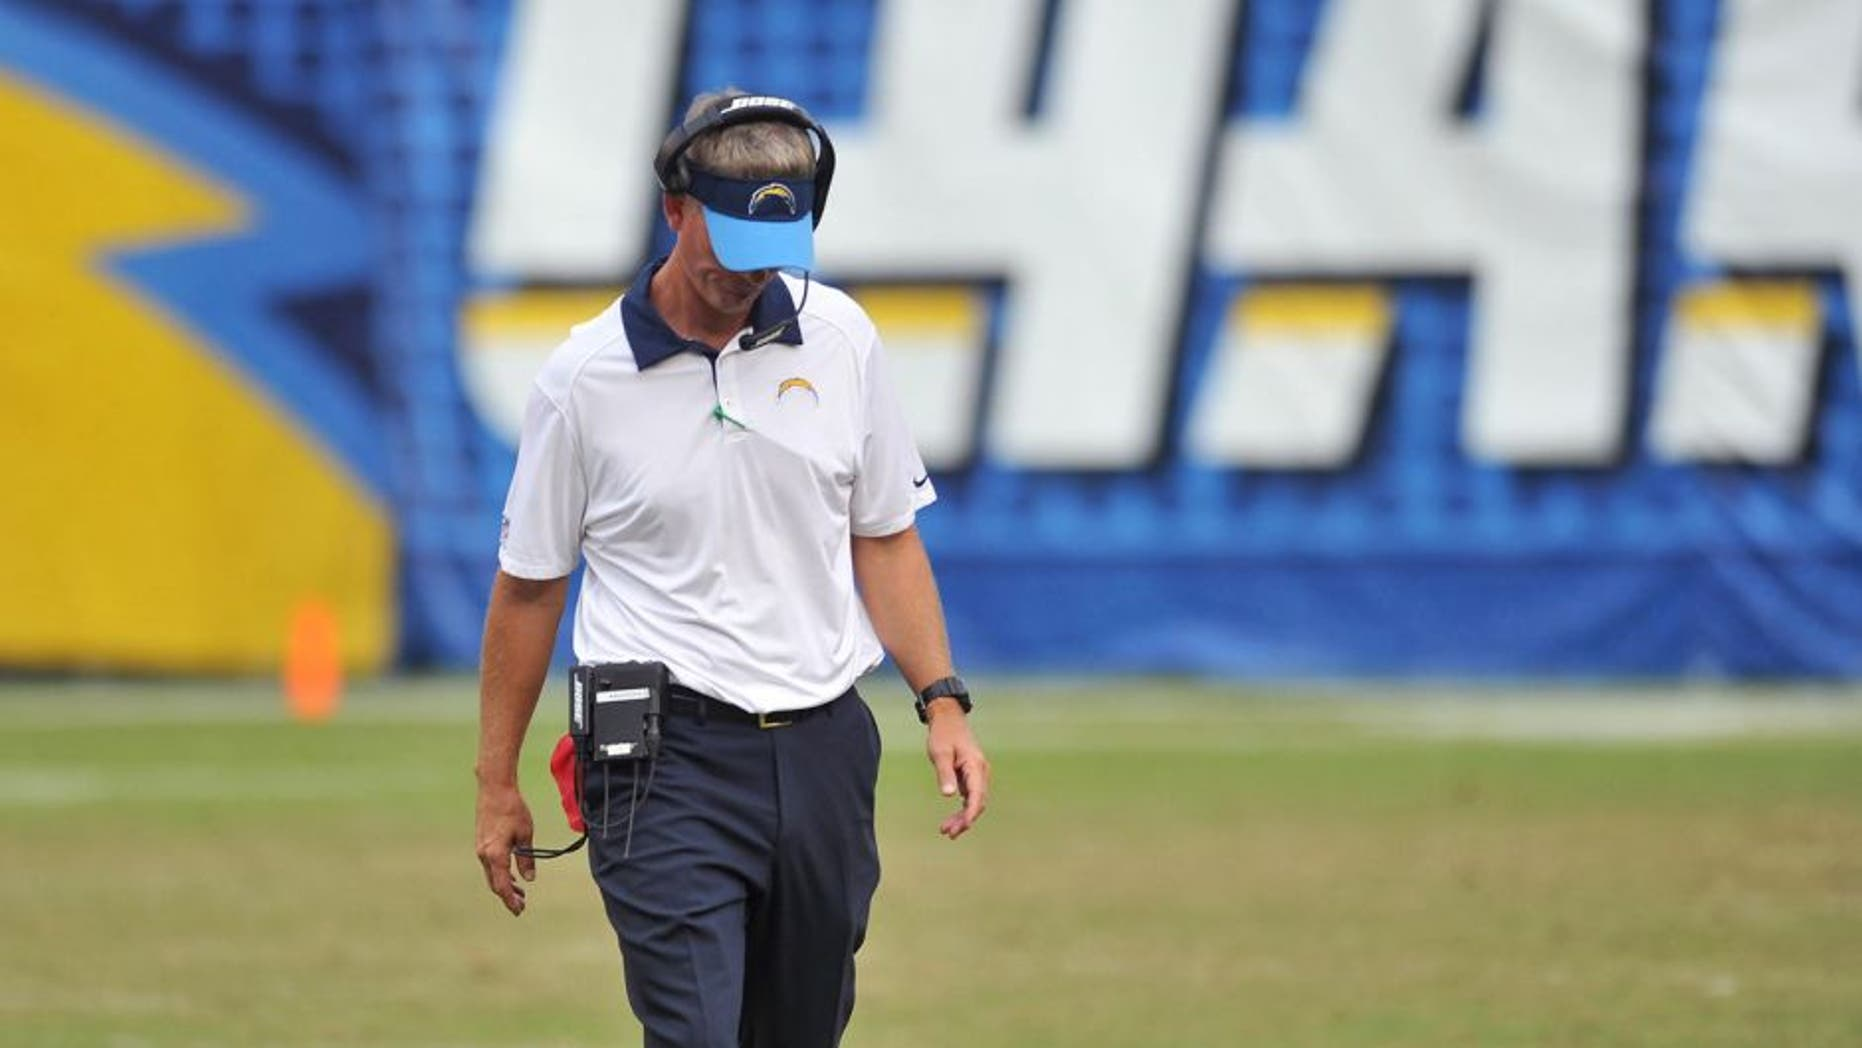 Oct 25, 2015; San Diego, CA, USA; San Diego Chargers head coach Mike McCoy reacts during a break in play during the second half of the game against the Oakland Raiders at Qualcomm Stadium. Oakland won 37-29. Mandatory Credit: Orlando Ramirez-USA TODAY Sports